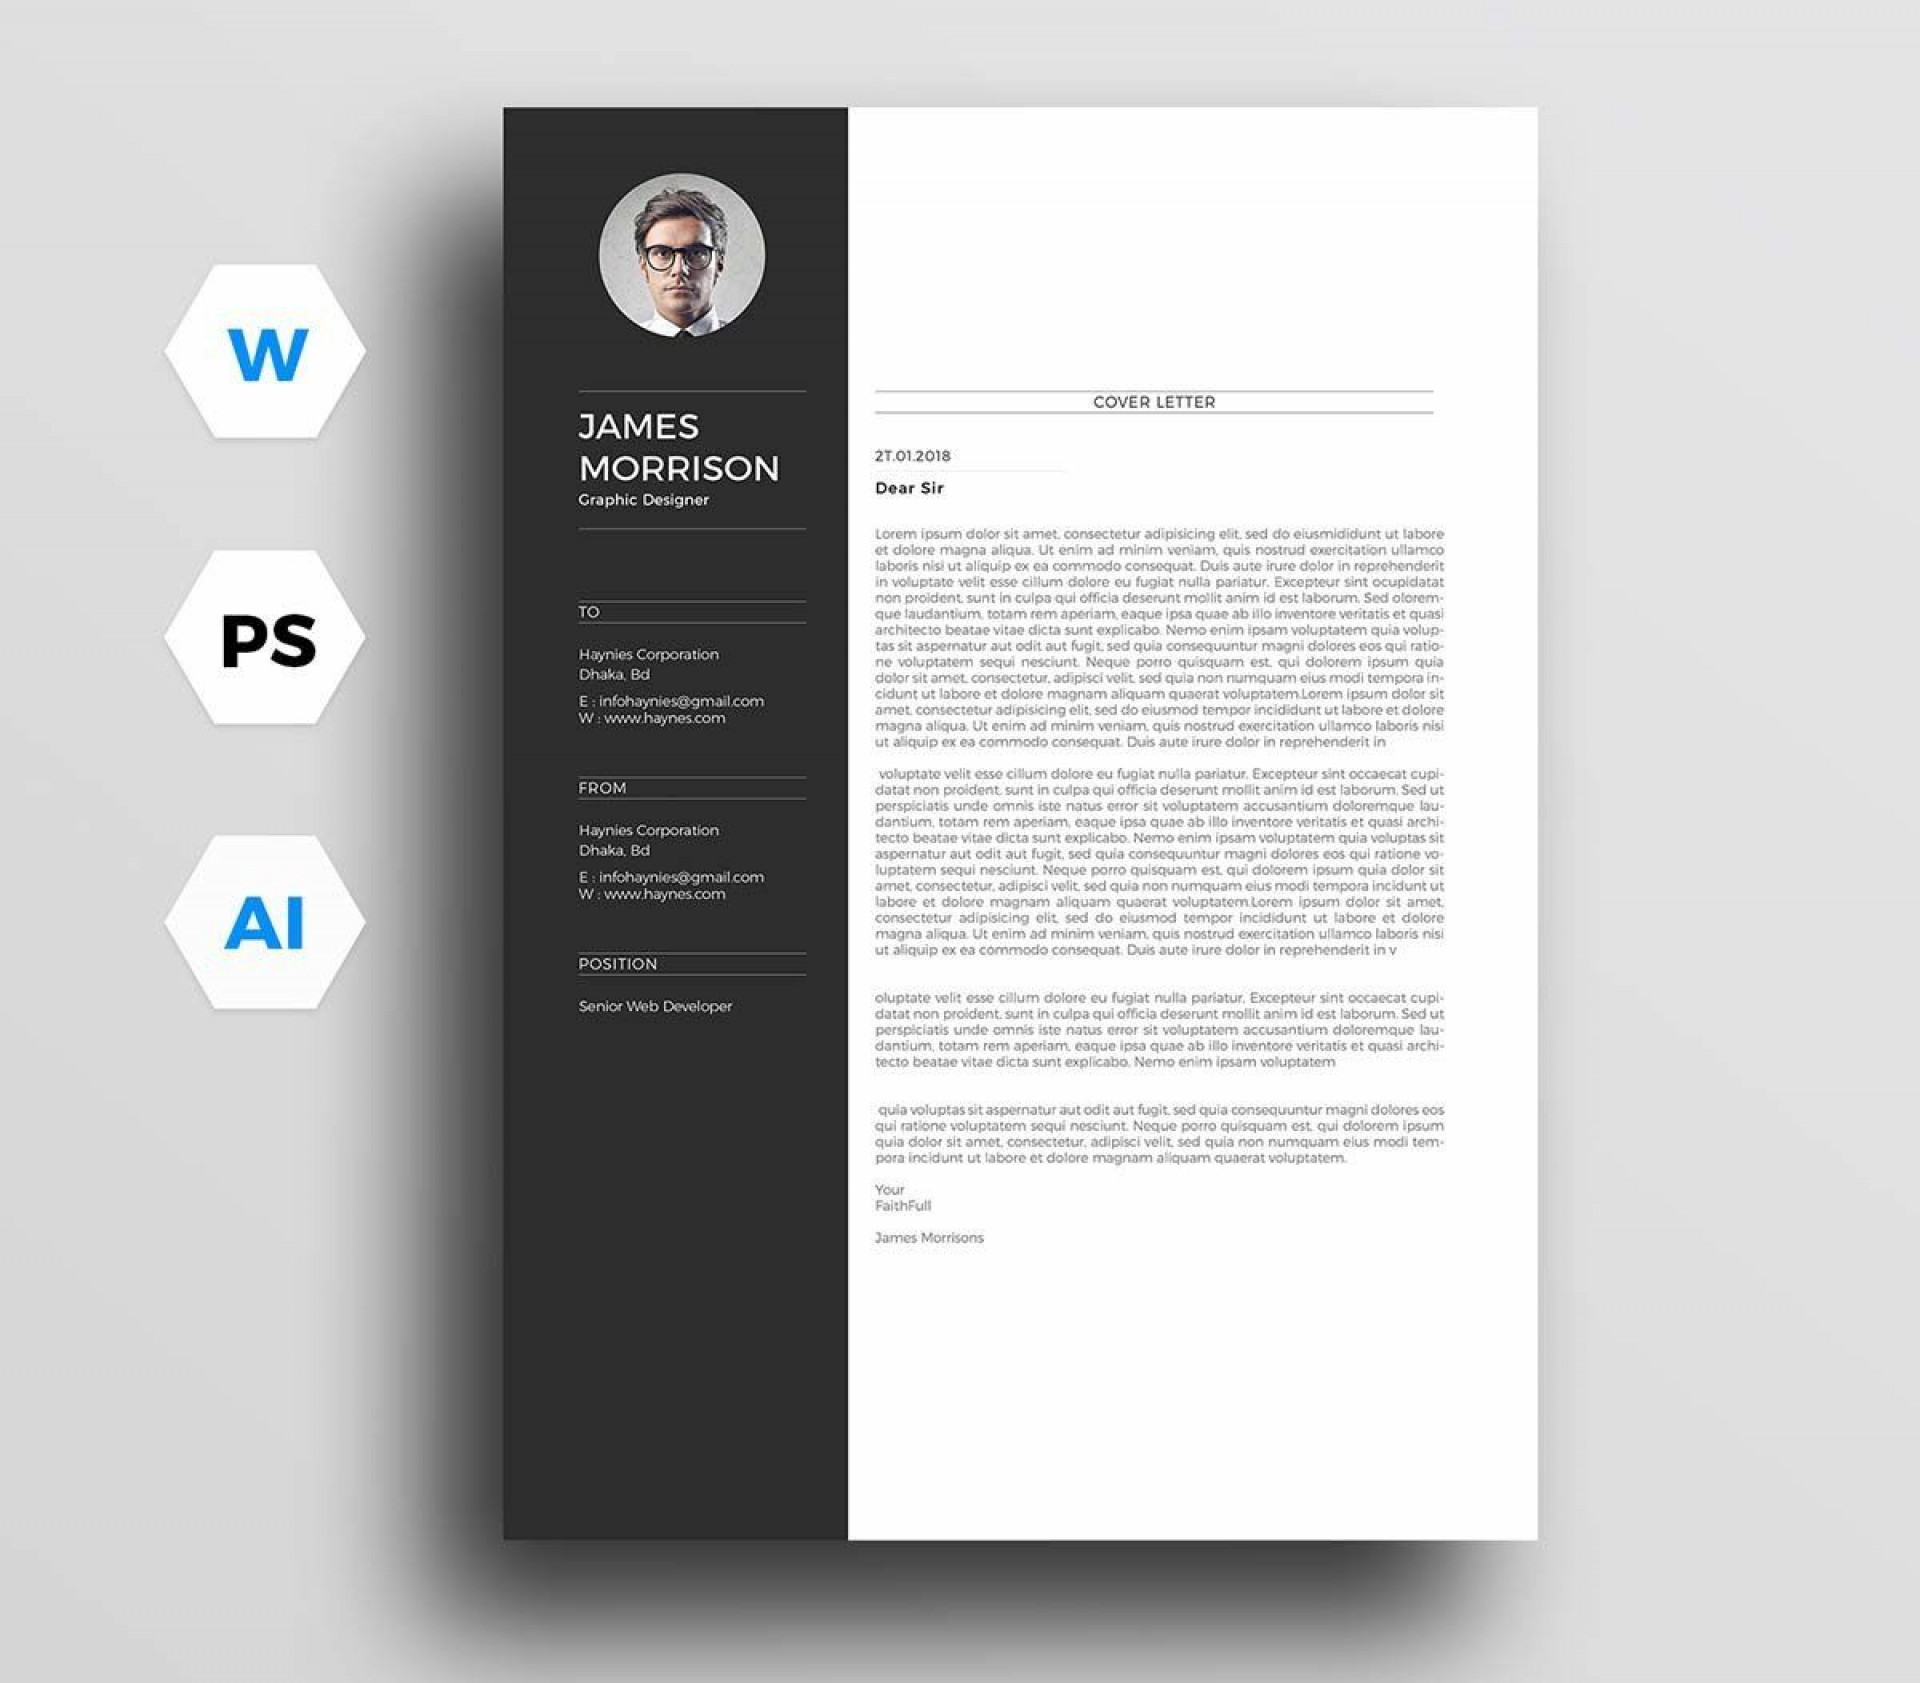 005 Wonderful Cover Letter Template Office Online Idea  Microsoft1920